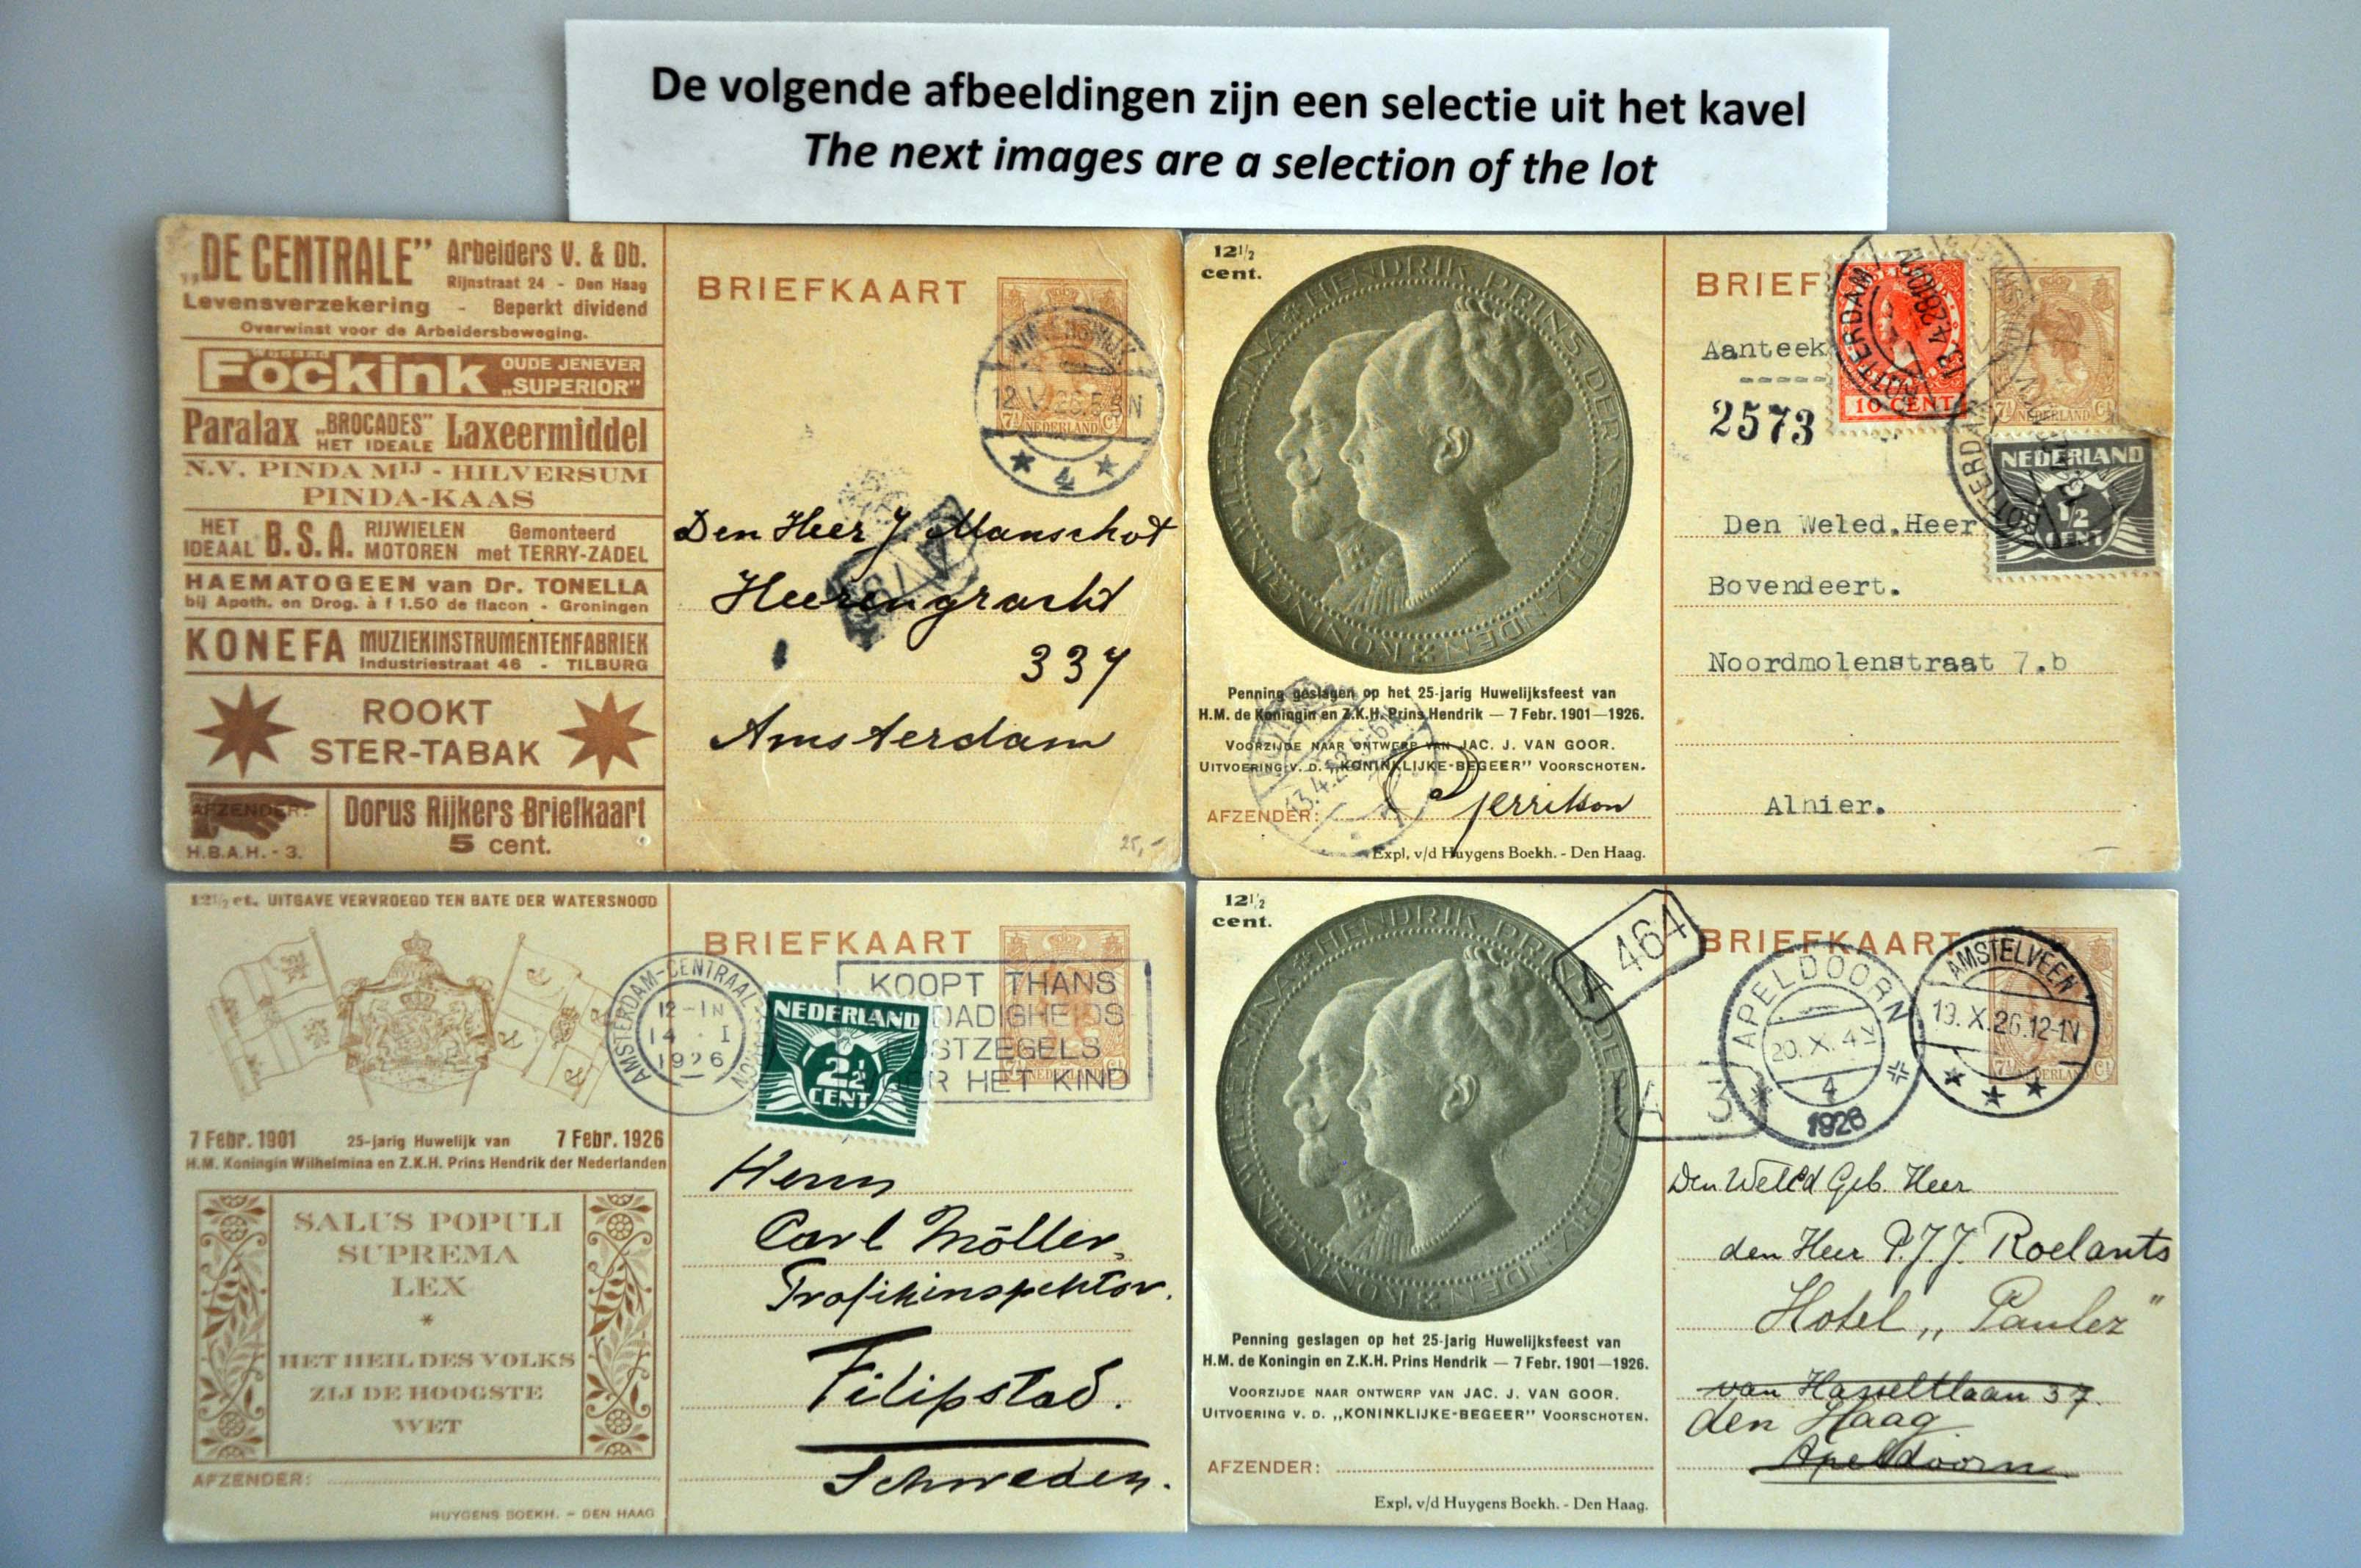 Lot 1662 - Netherlands and former colonies Netherlands -  Corinphila Veilingen Auction 250-253 - Day 2 - Coins, medals, Netherlands and former colonies